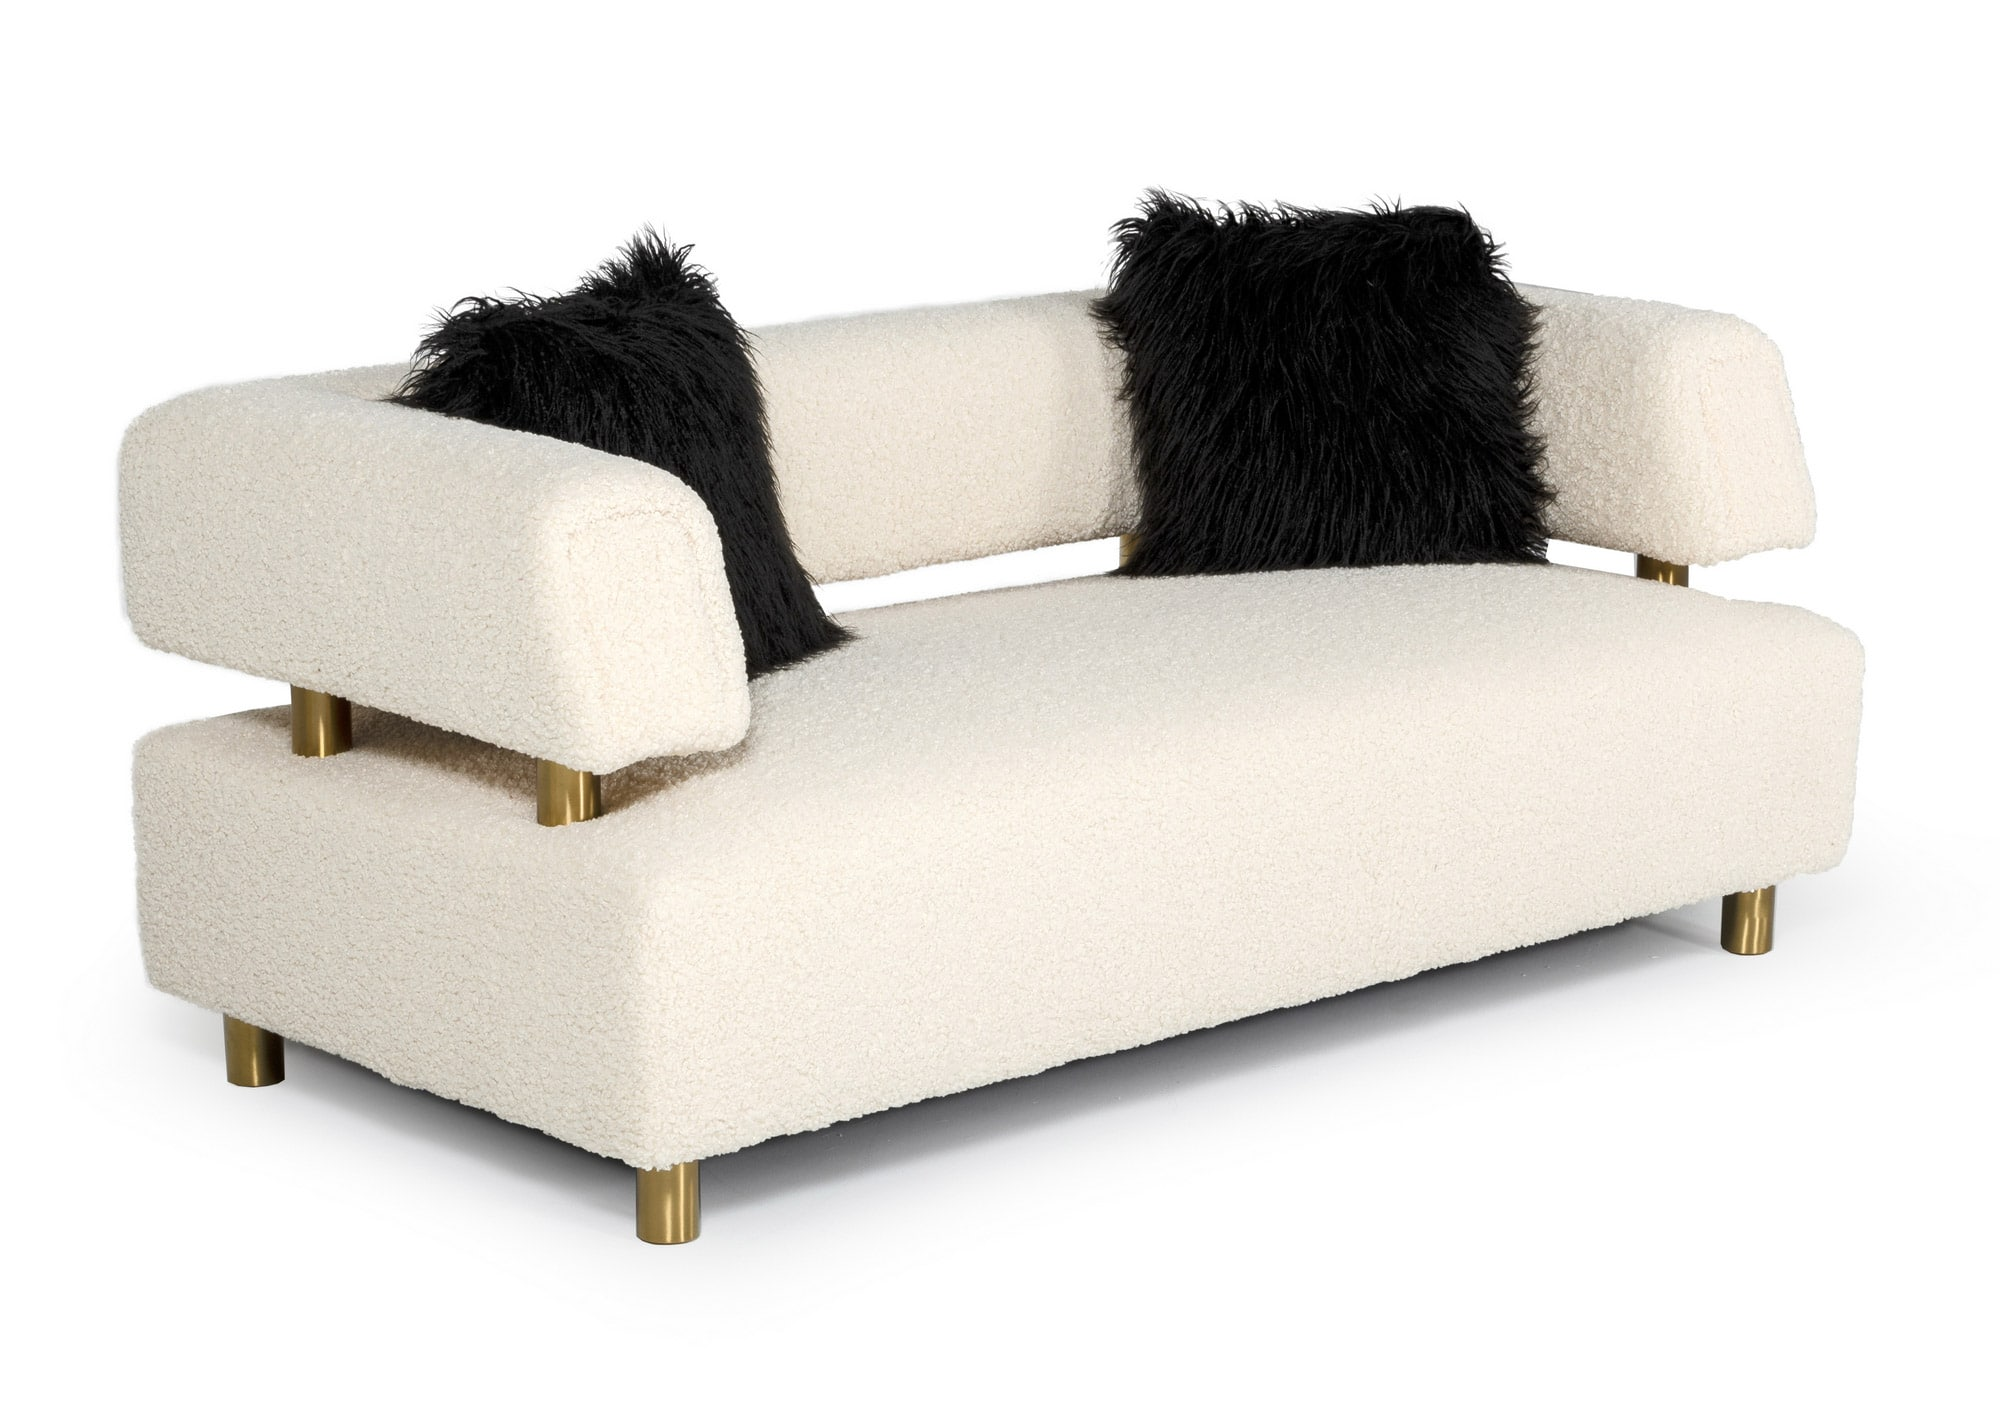 VIG Furniture Divani Casa Gannet Glam Beige Fabric Loveseat